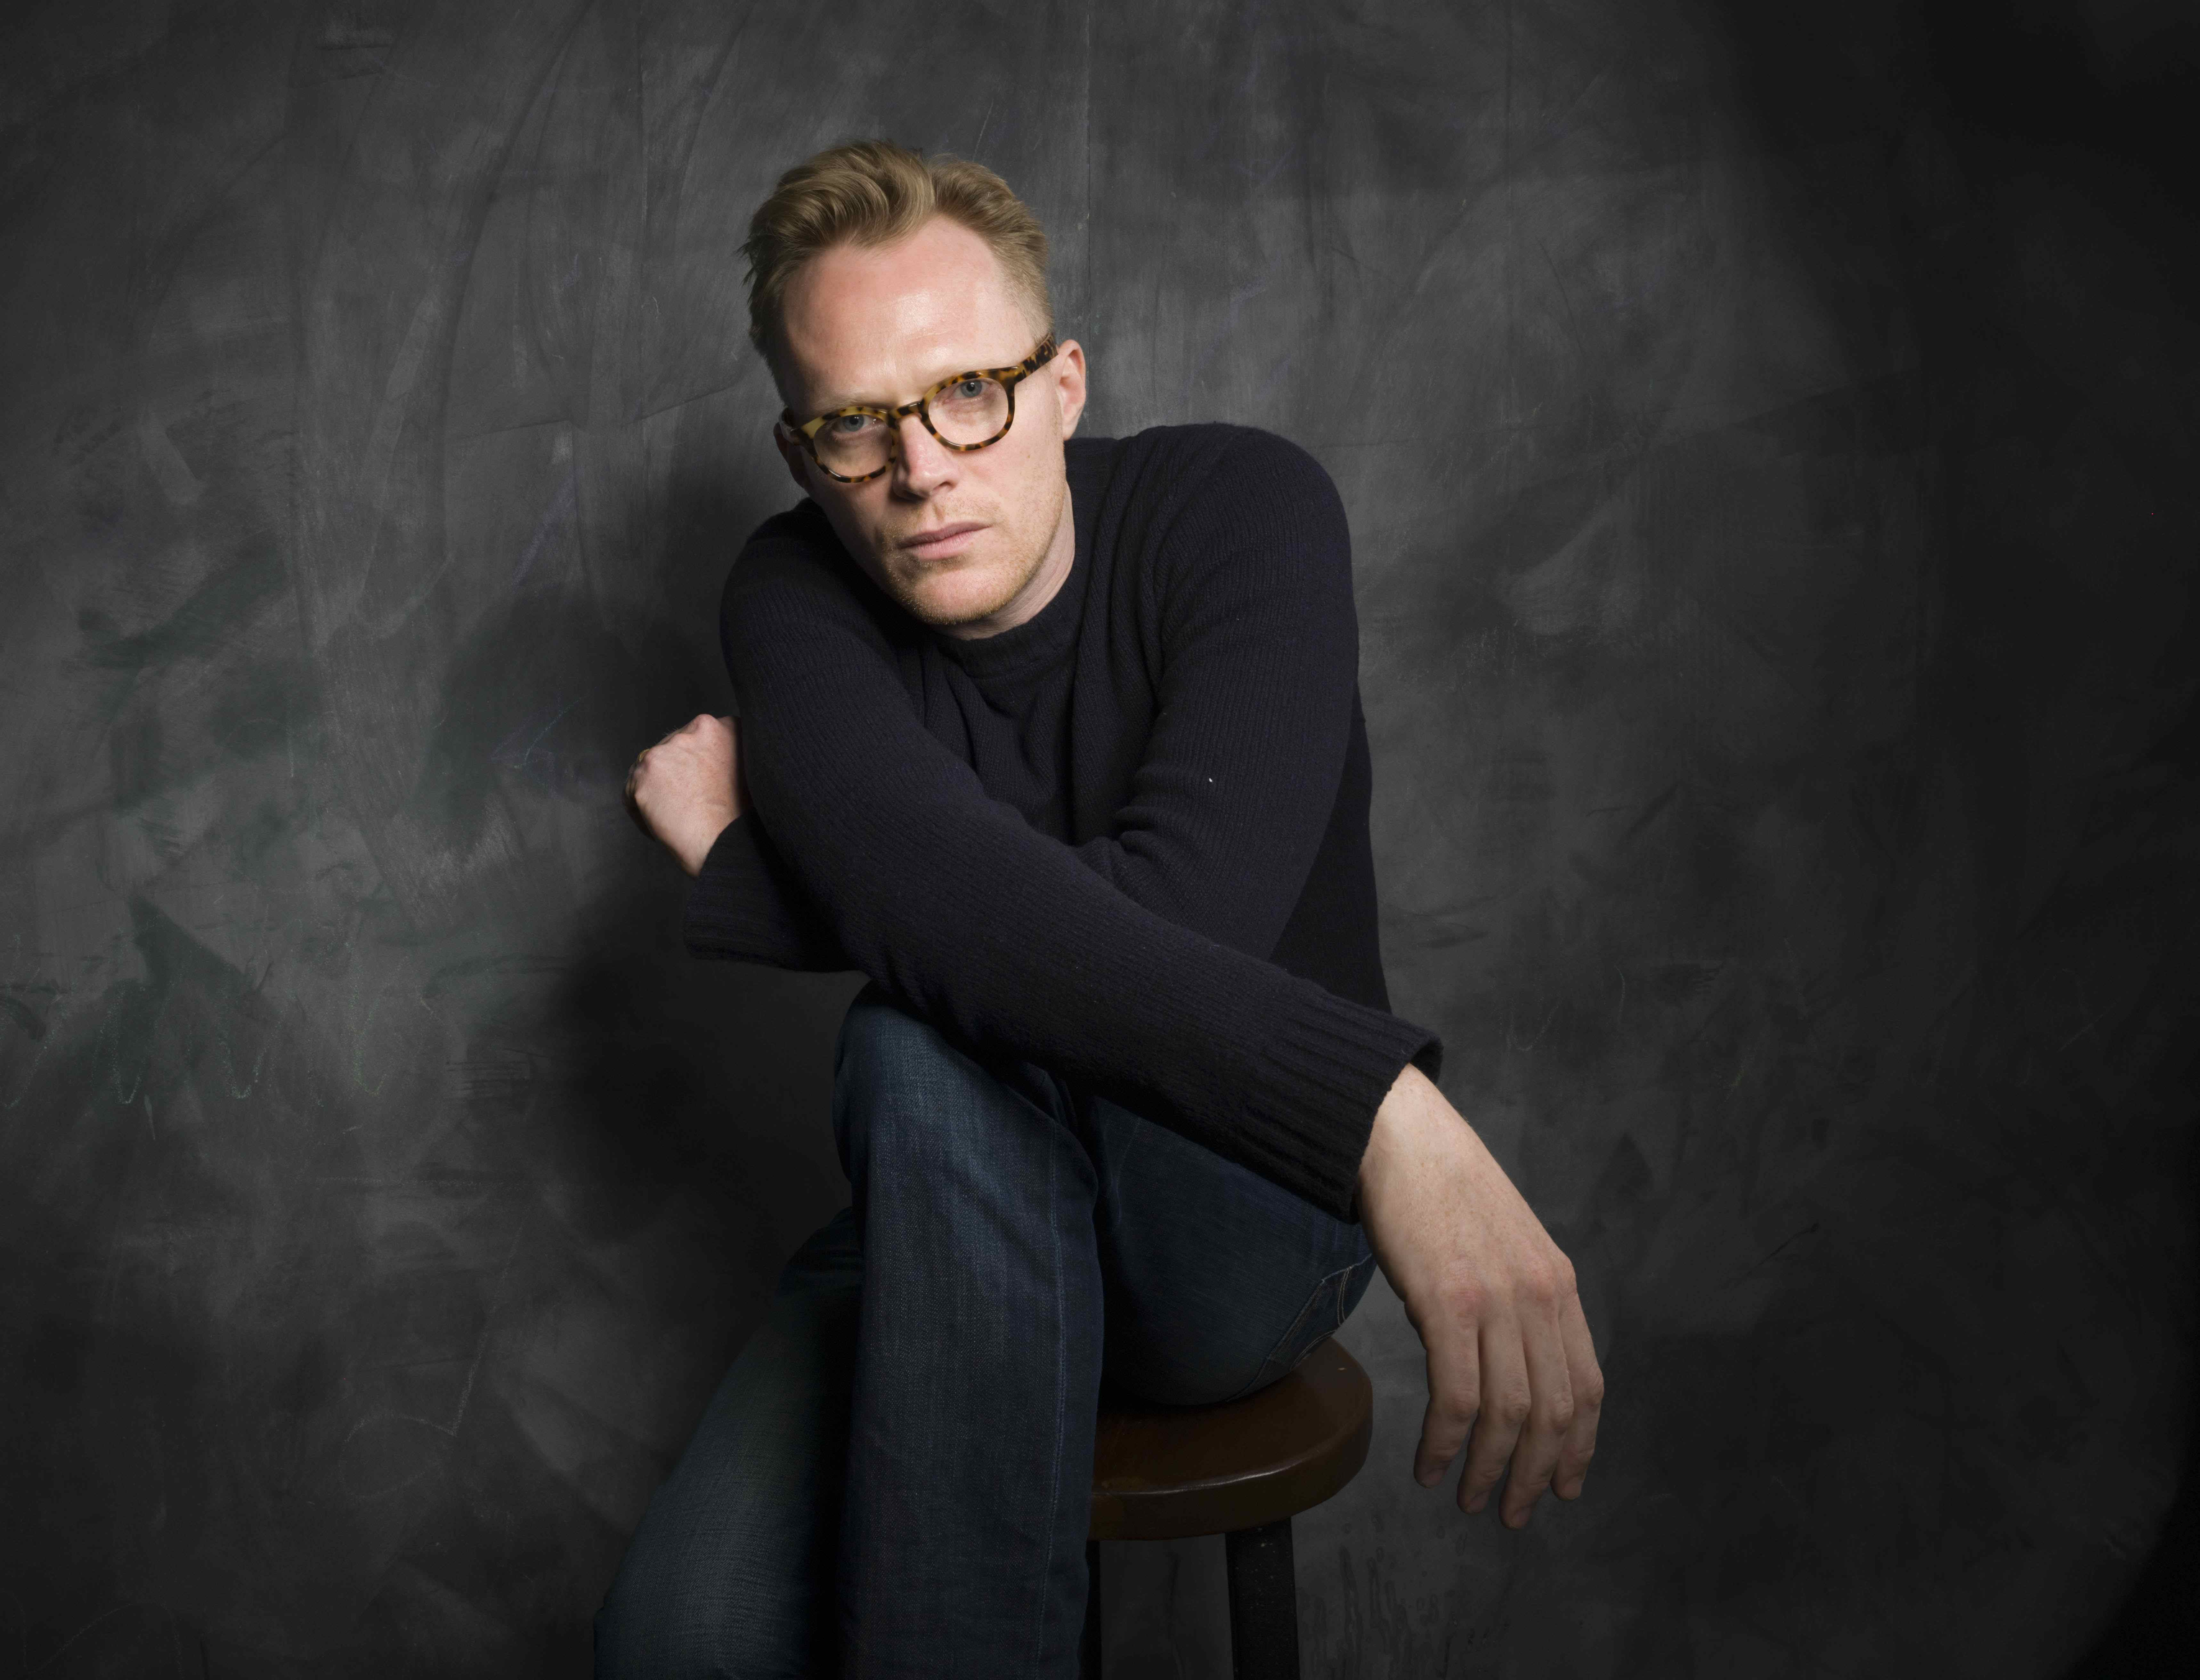 Paul Bettany photo, pics, wallpaper - photo #